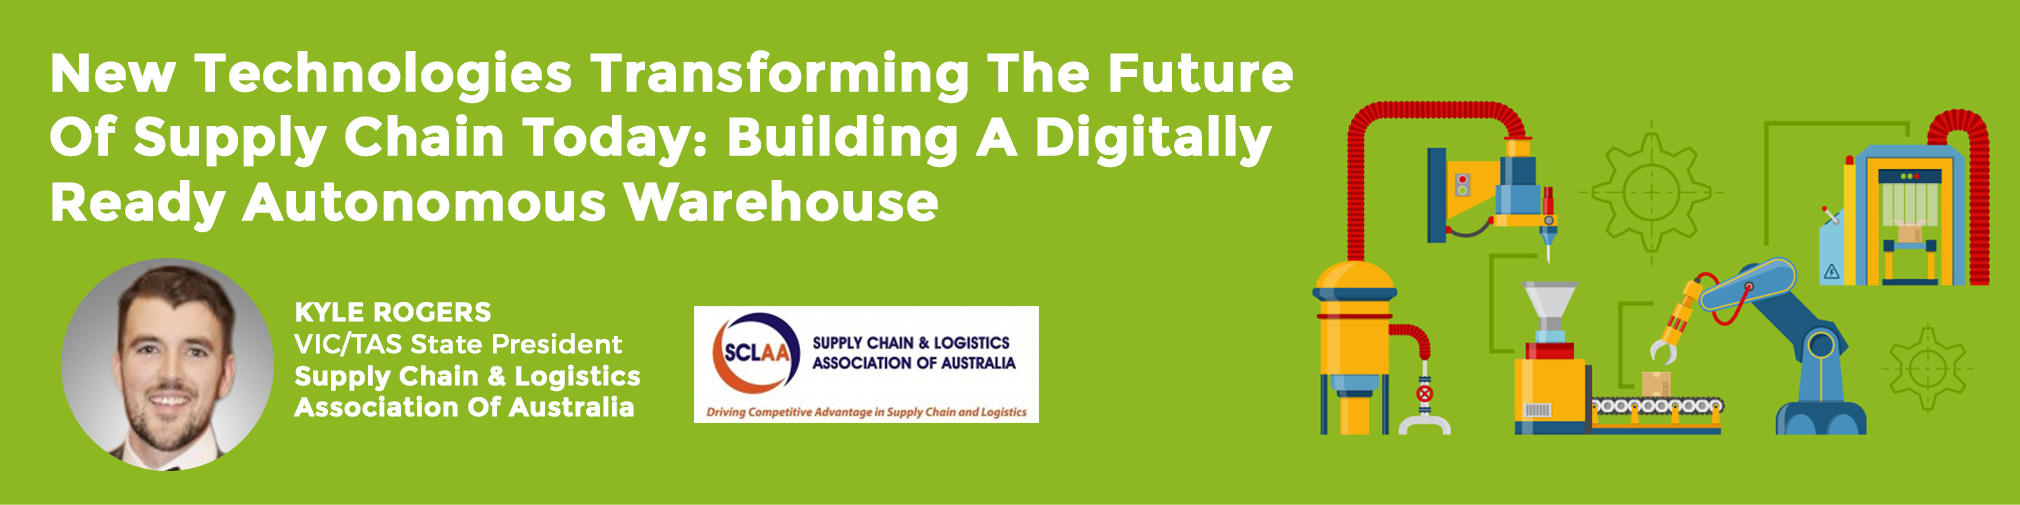 3rd Digital Supply Chain Innovation And Humanless Warehouse